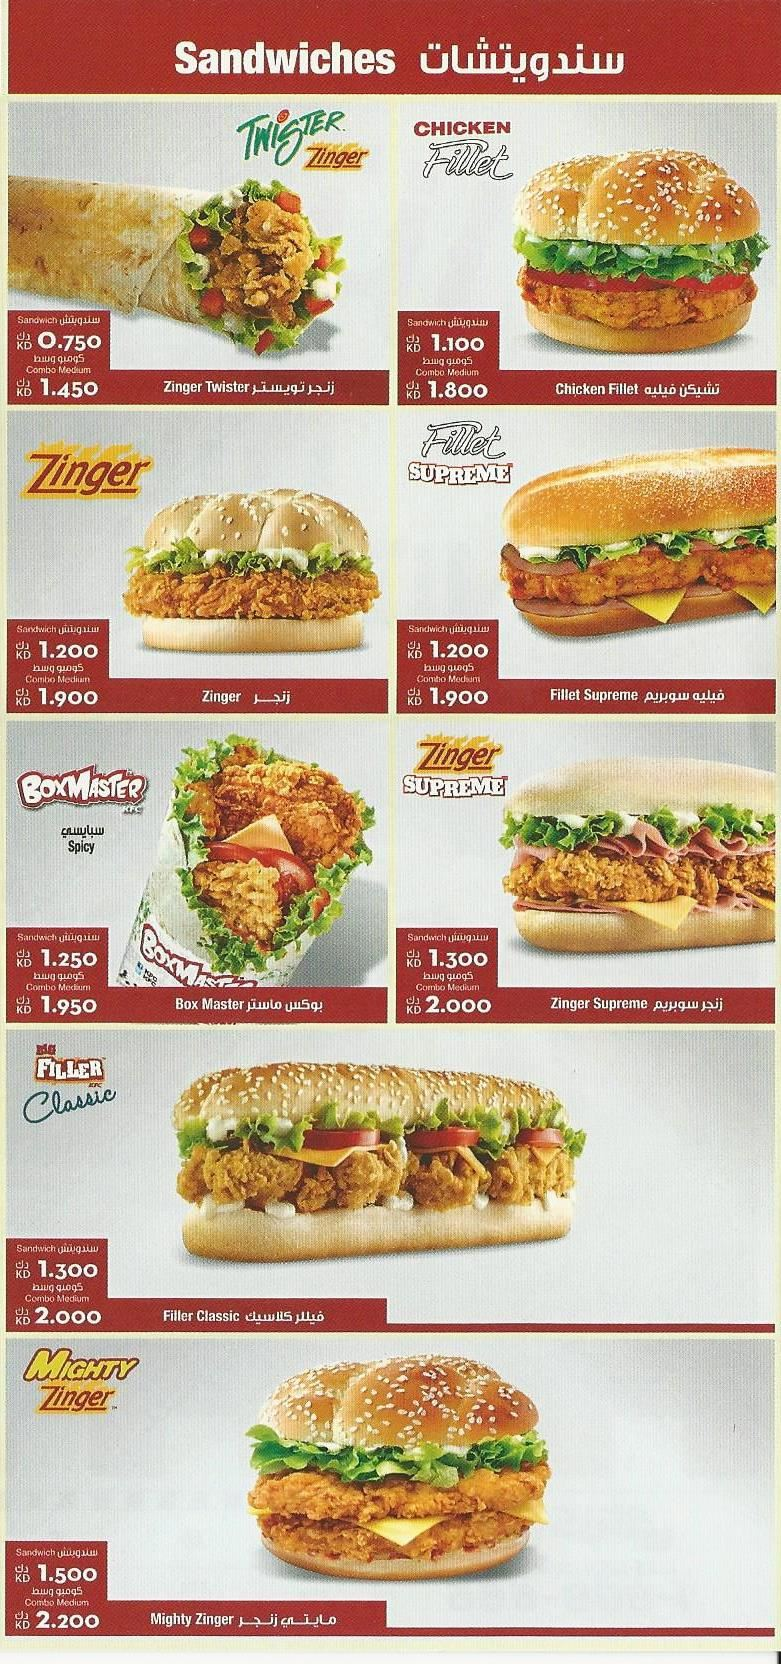 Kfc Kuwait Menu And Meals Prices Rinnoo Net Website